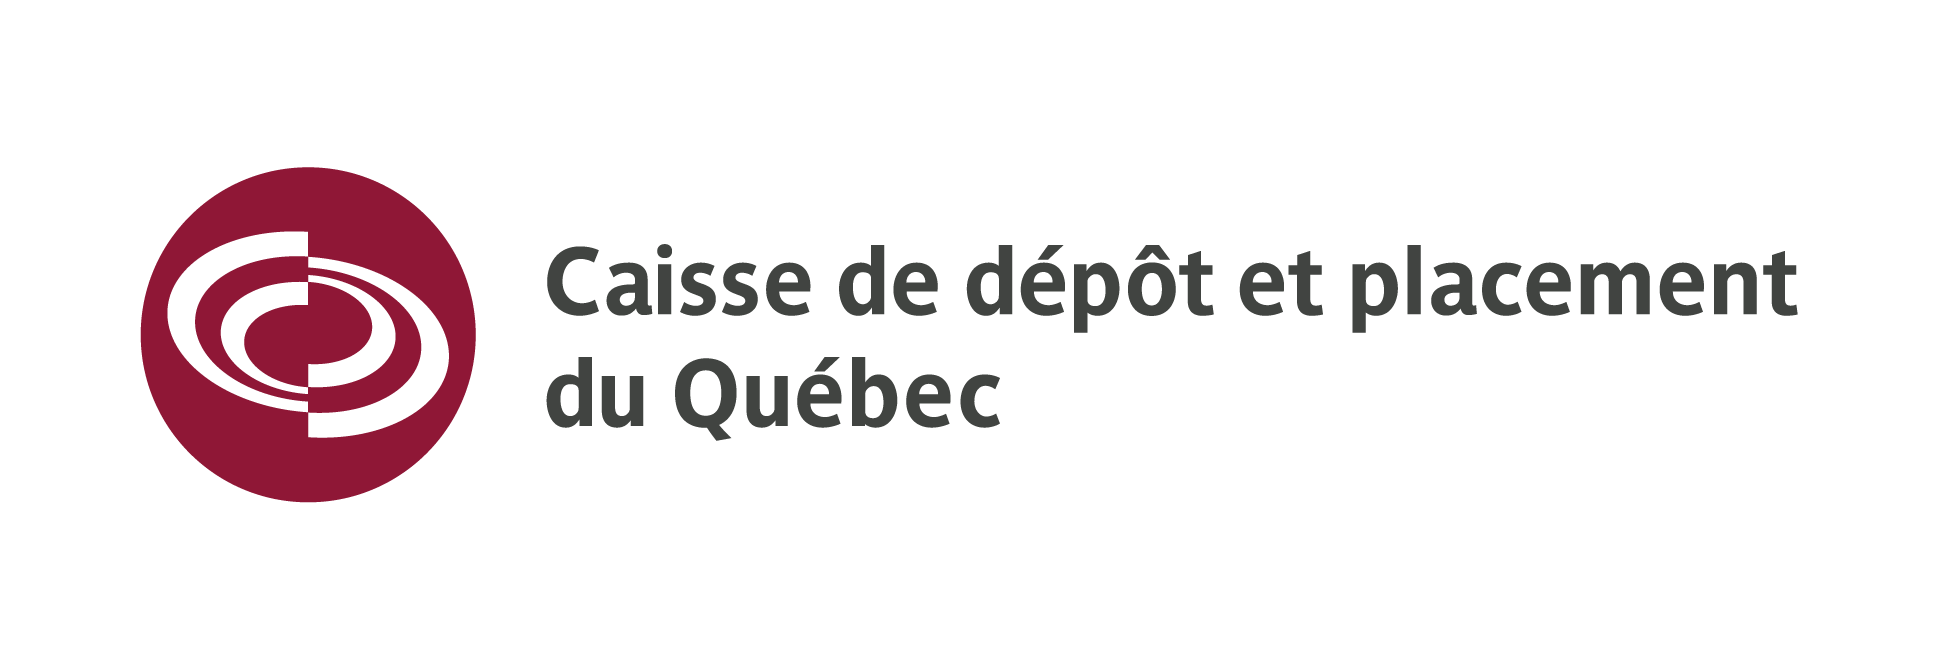 logo_caisse_rgb_.png